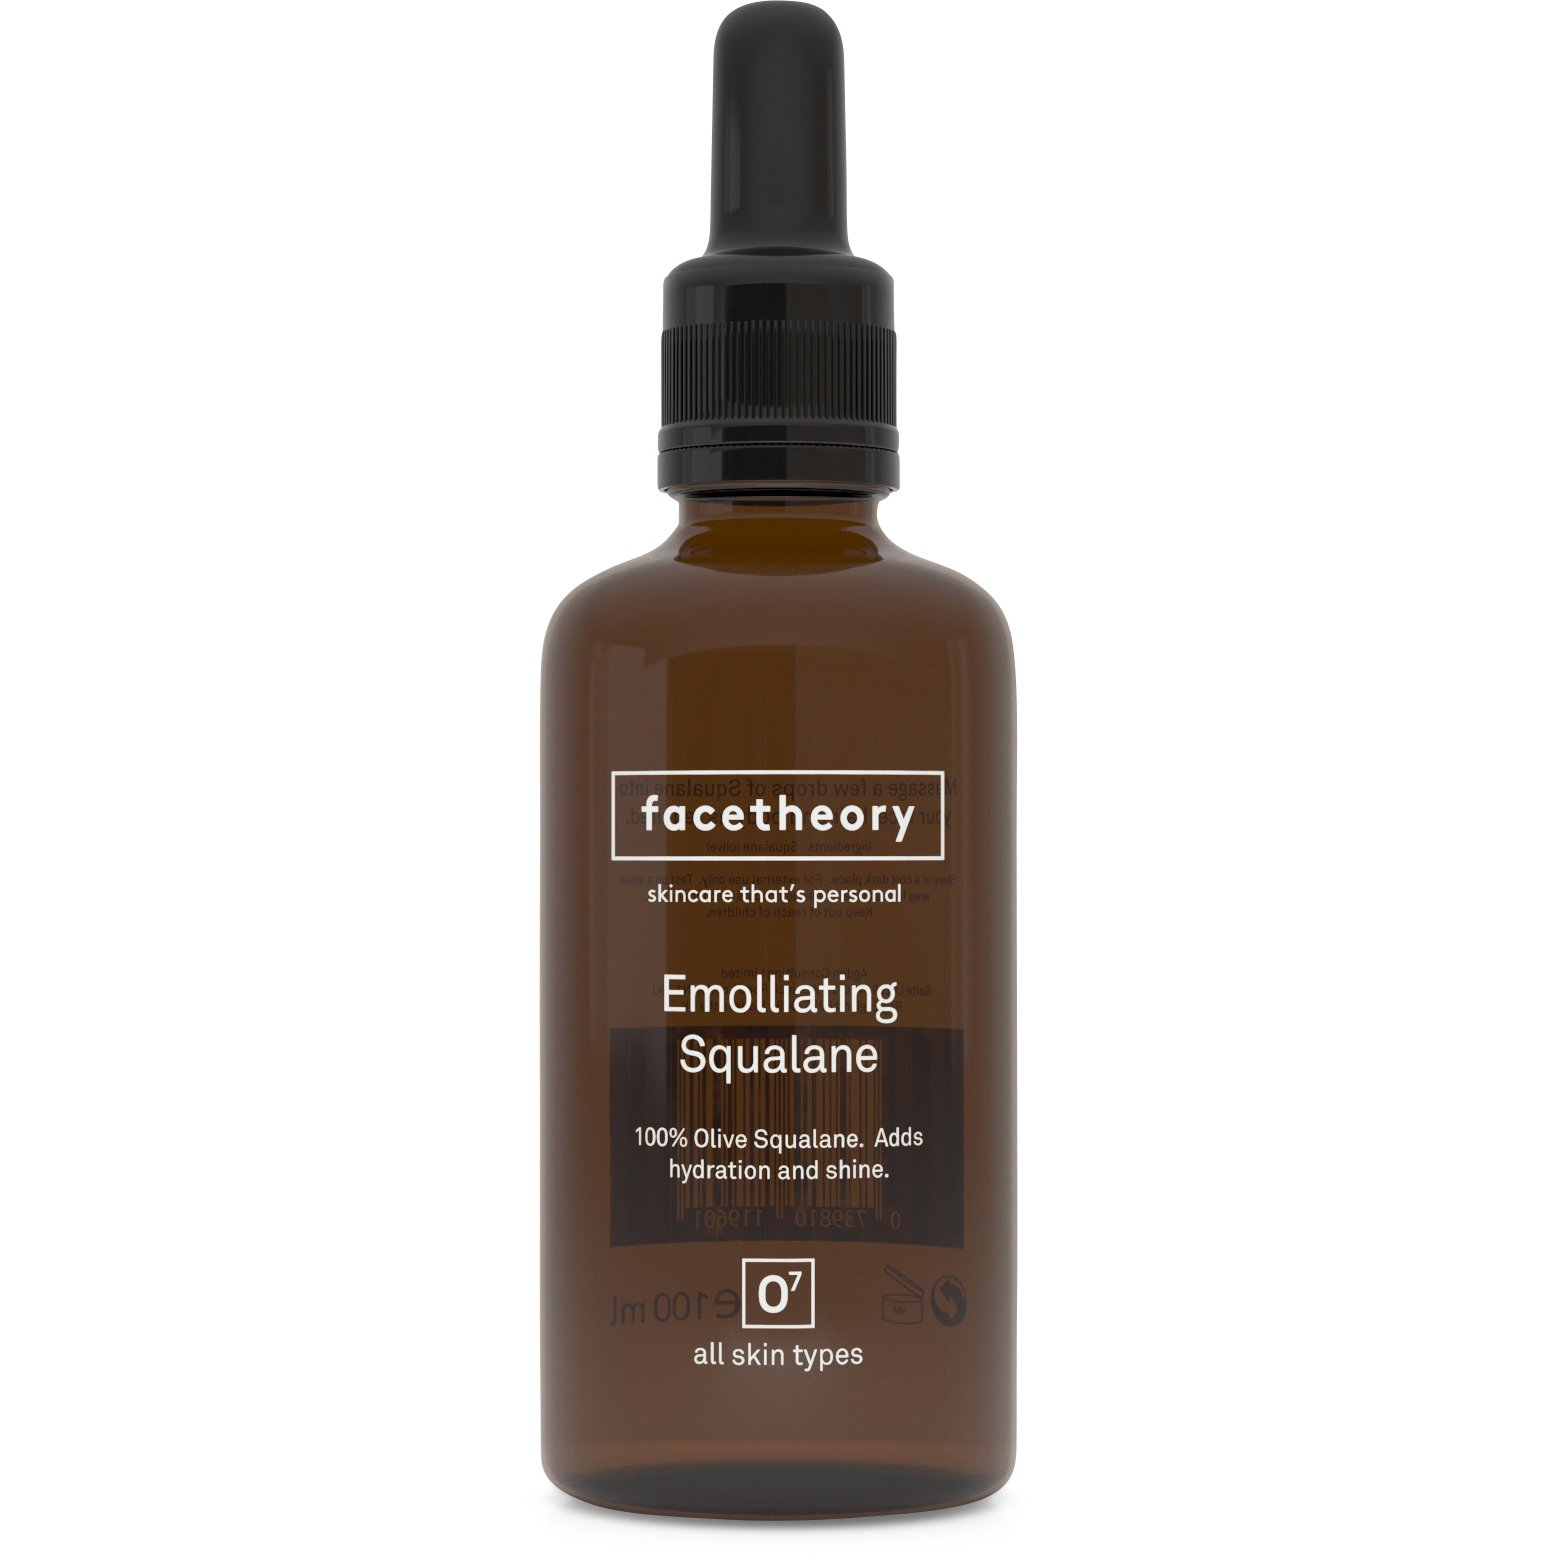 Facetheory Squalane Oil O7 (100ml). 100% Pure Vegan Olive Squalane - An Exceptional Emollient for Dry and Sensitive Skin.